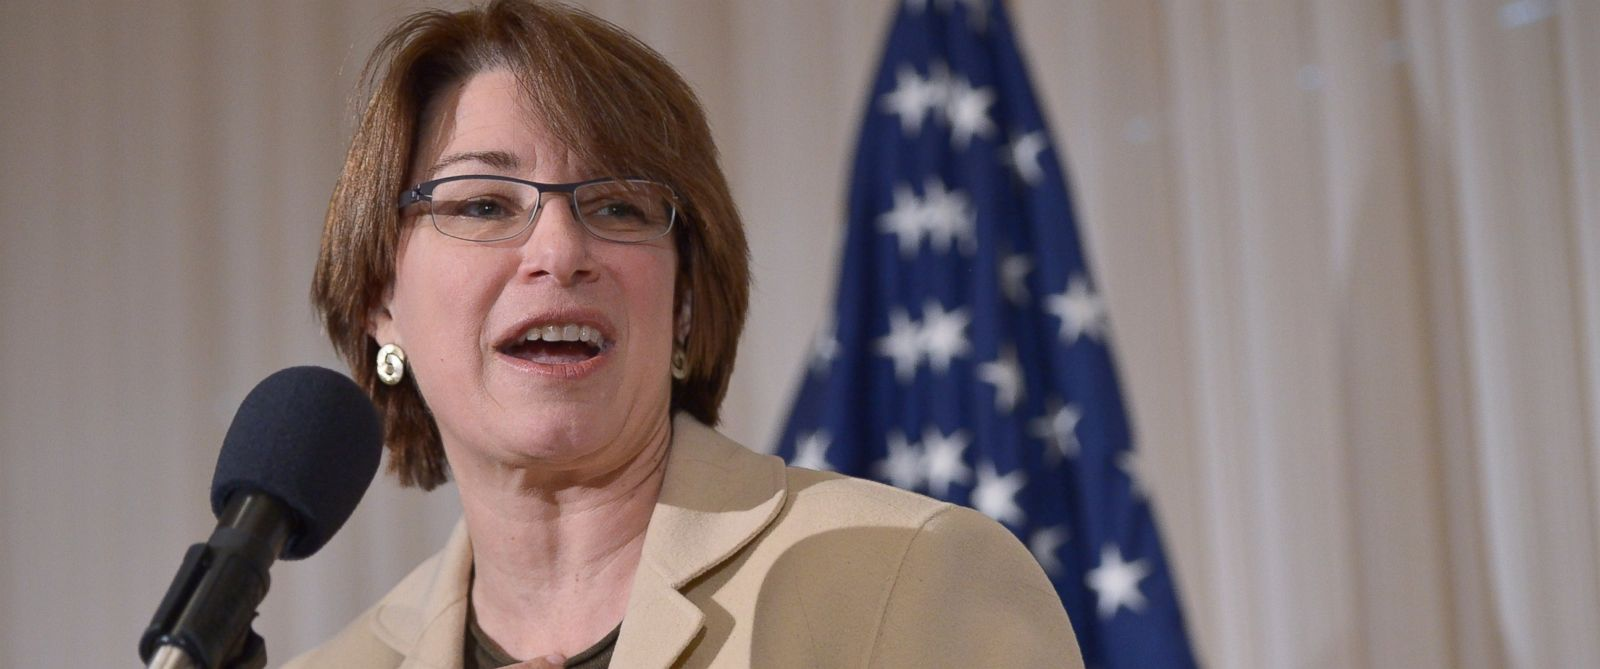 PHOTO: Sen. Amy Klobuchar speaks during the launch of the U.S. Agriculture Coalition for Cuba at the National Press Club, Jan. 8, 2014, in Washington.